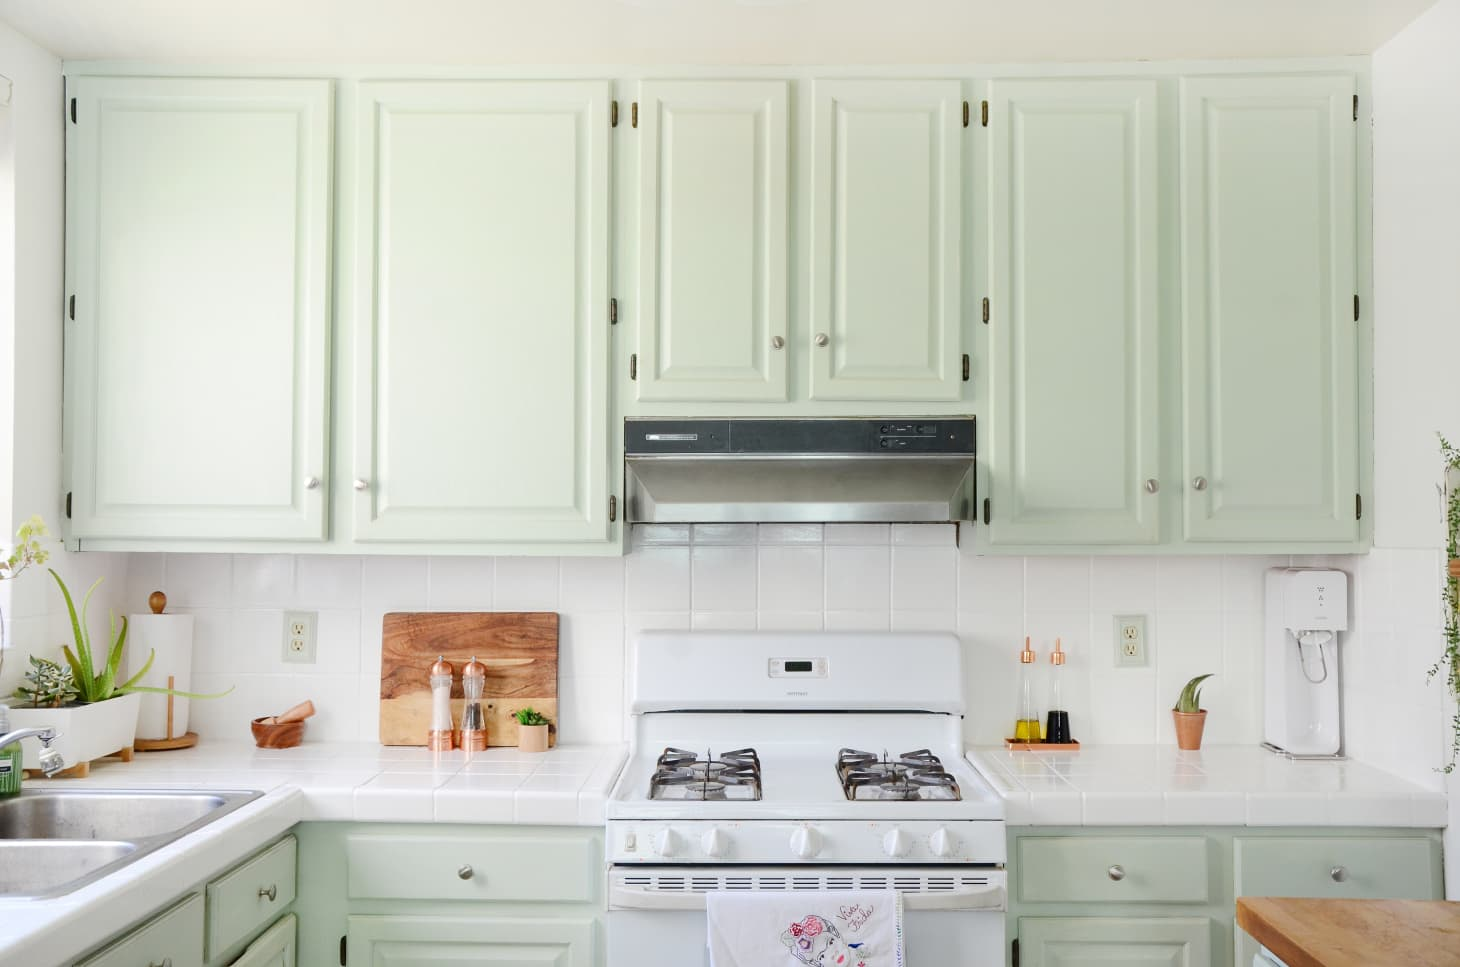 The Best Kitchen Cabinet Trends For 2020 According To